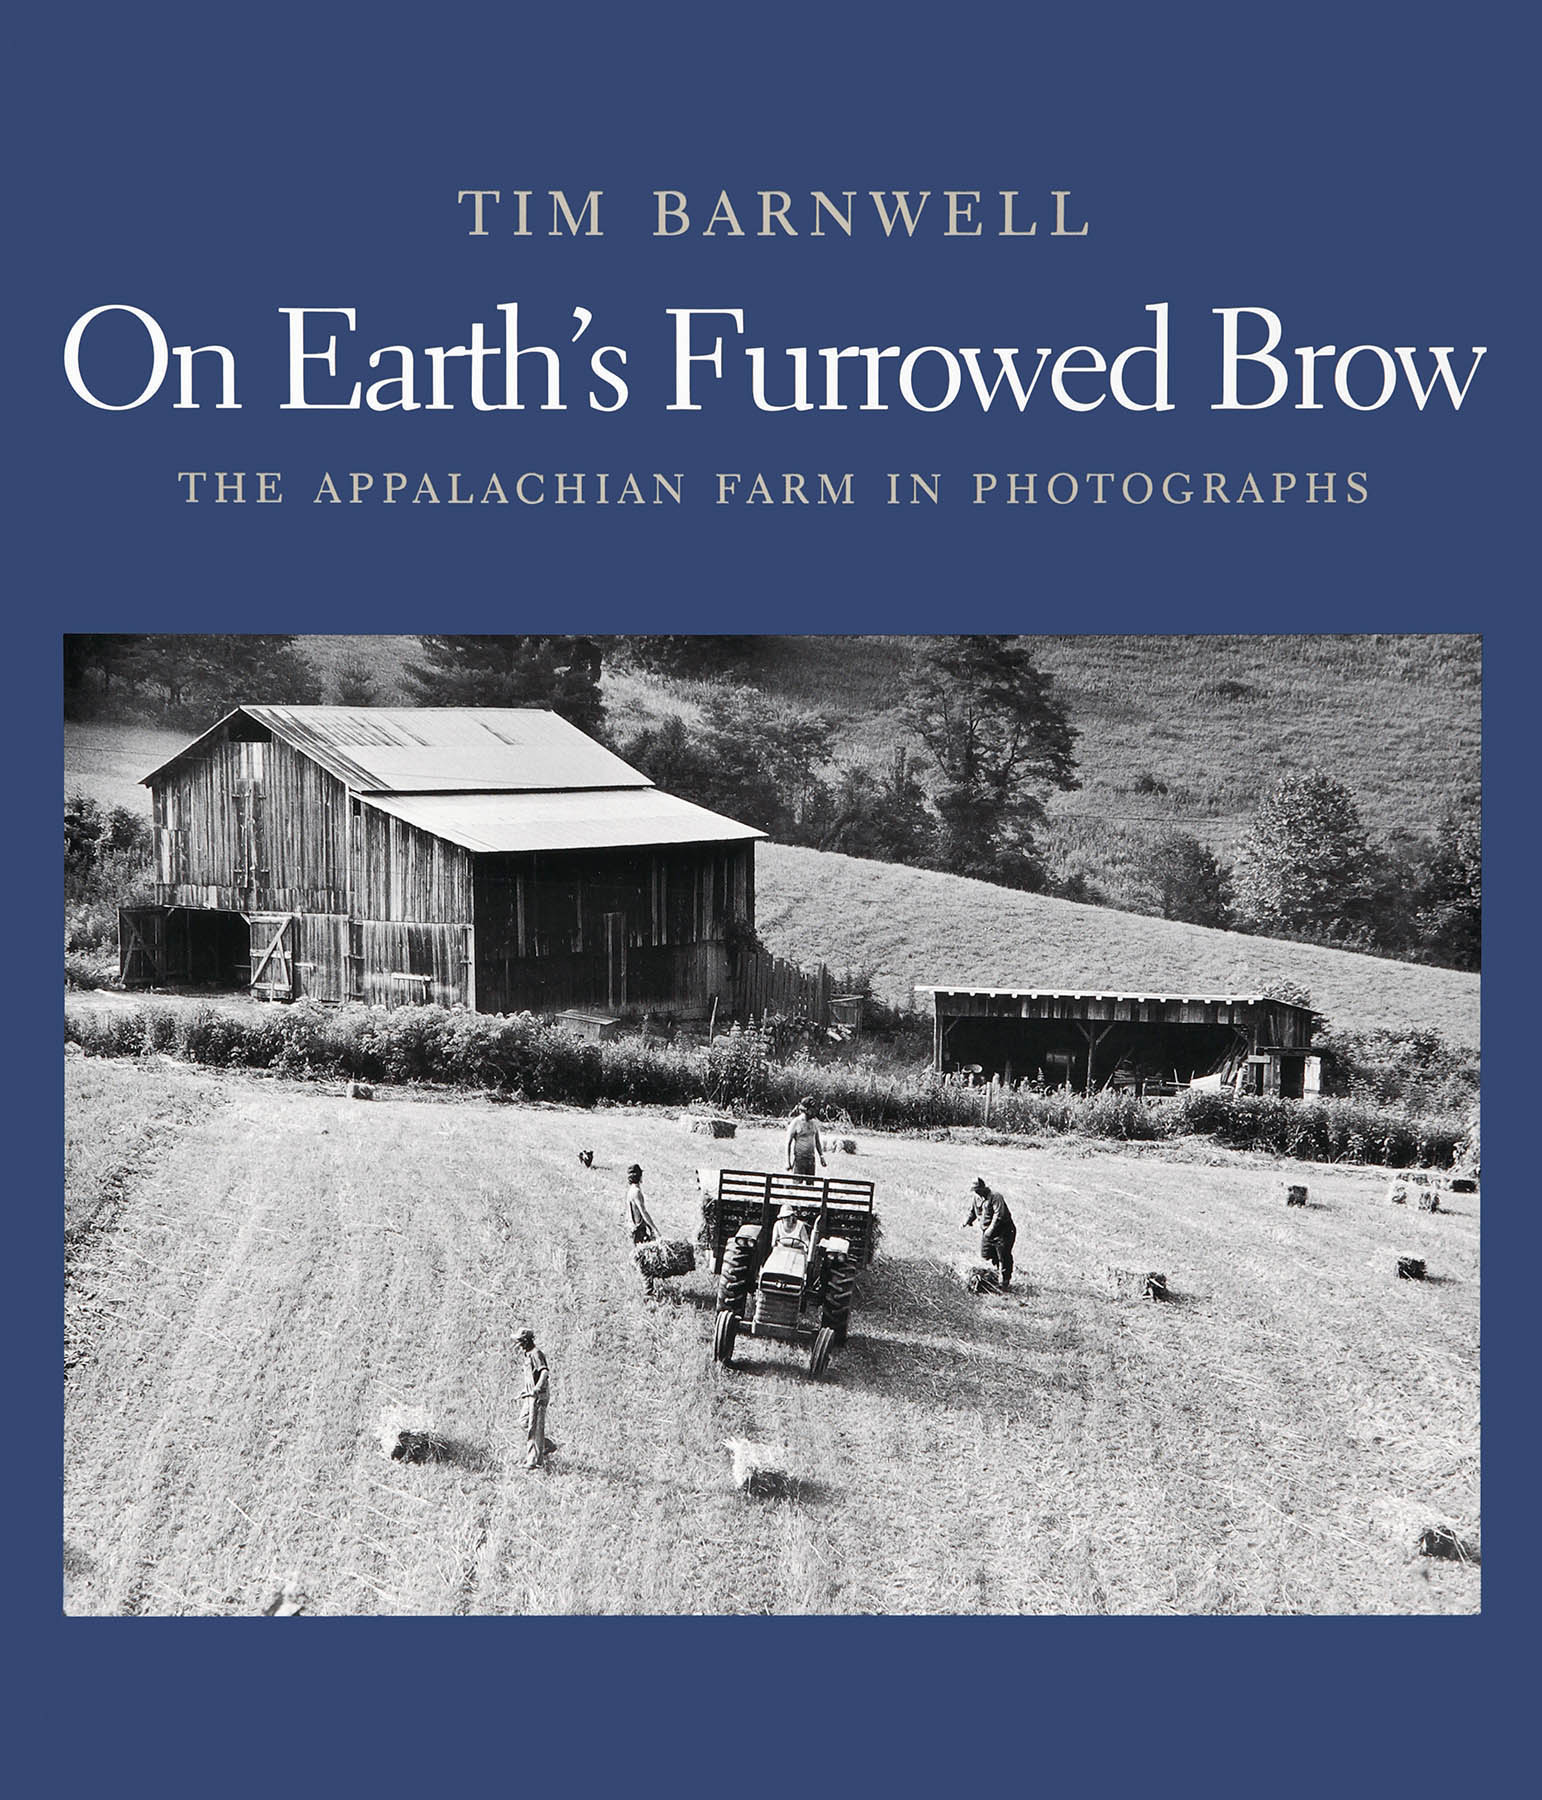 Copy of On Earth's Furrowed Brow Appalchian Farm in Photographs